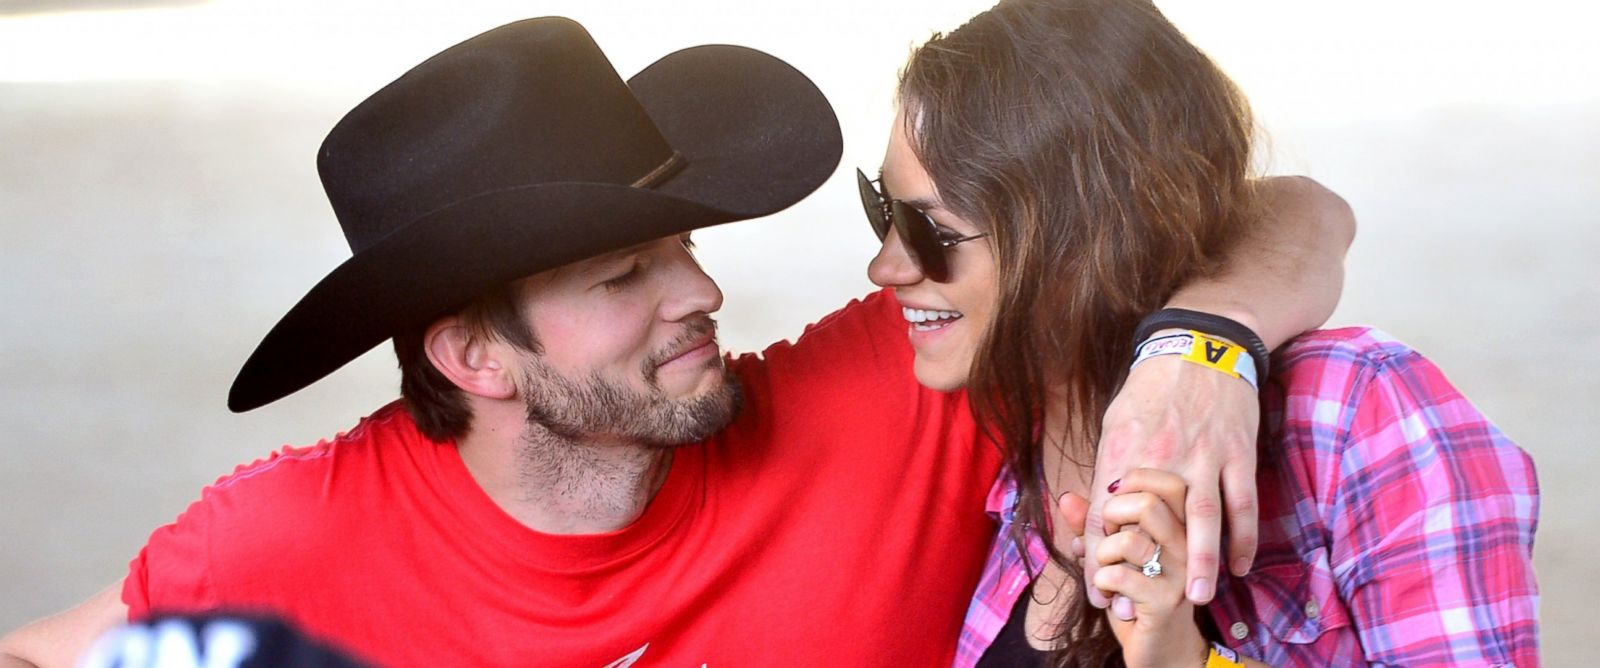 PHOTO: Ashton Kutcher, left, and Mila Kunis, right, attend Stagecoach: Californias Country Music Festival on April 25, 2014 in Indio, Calif.